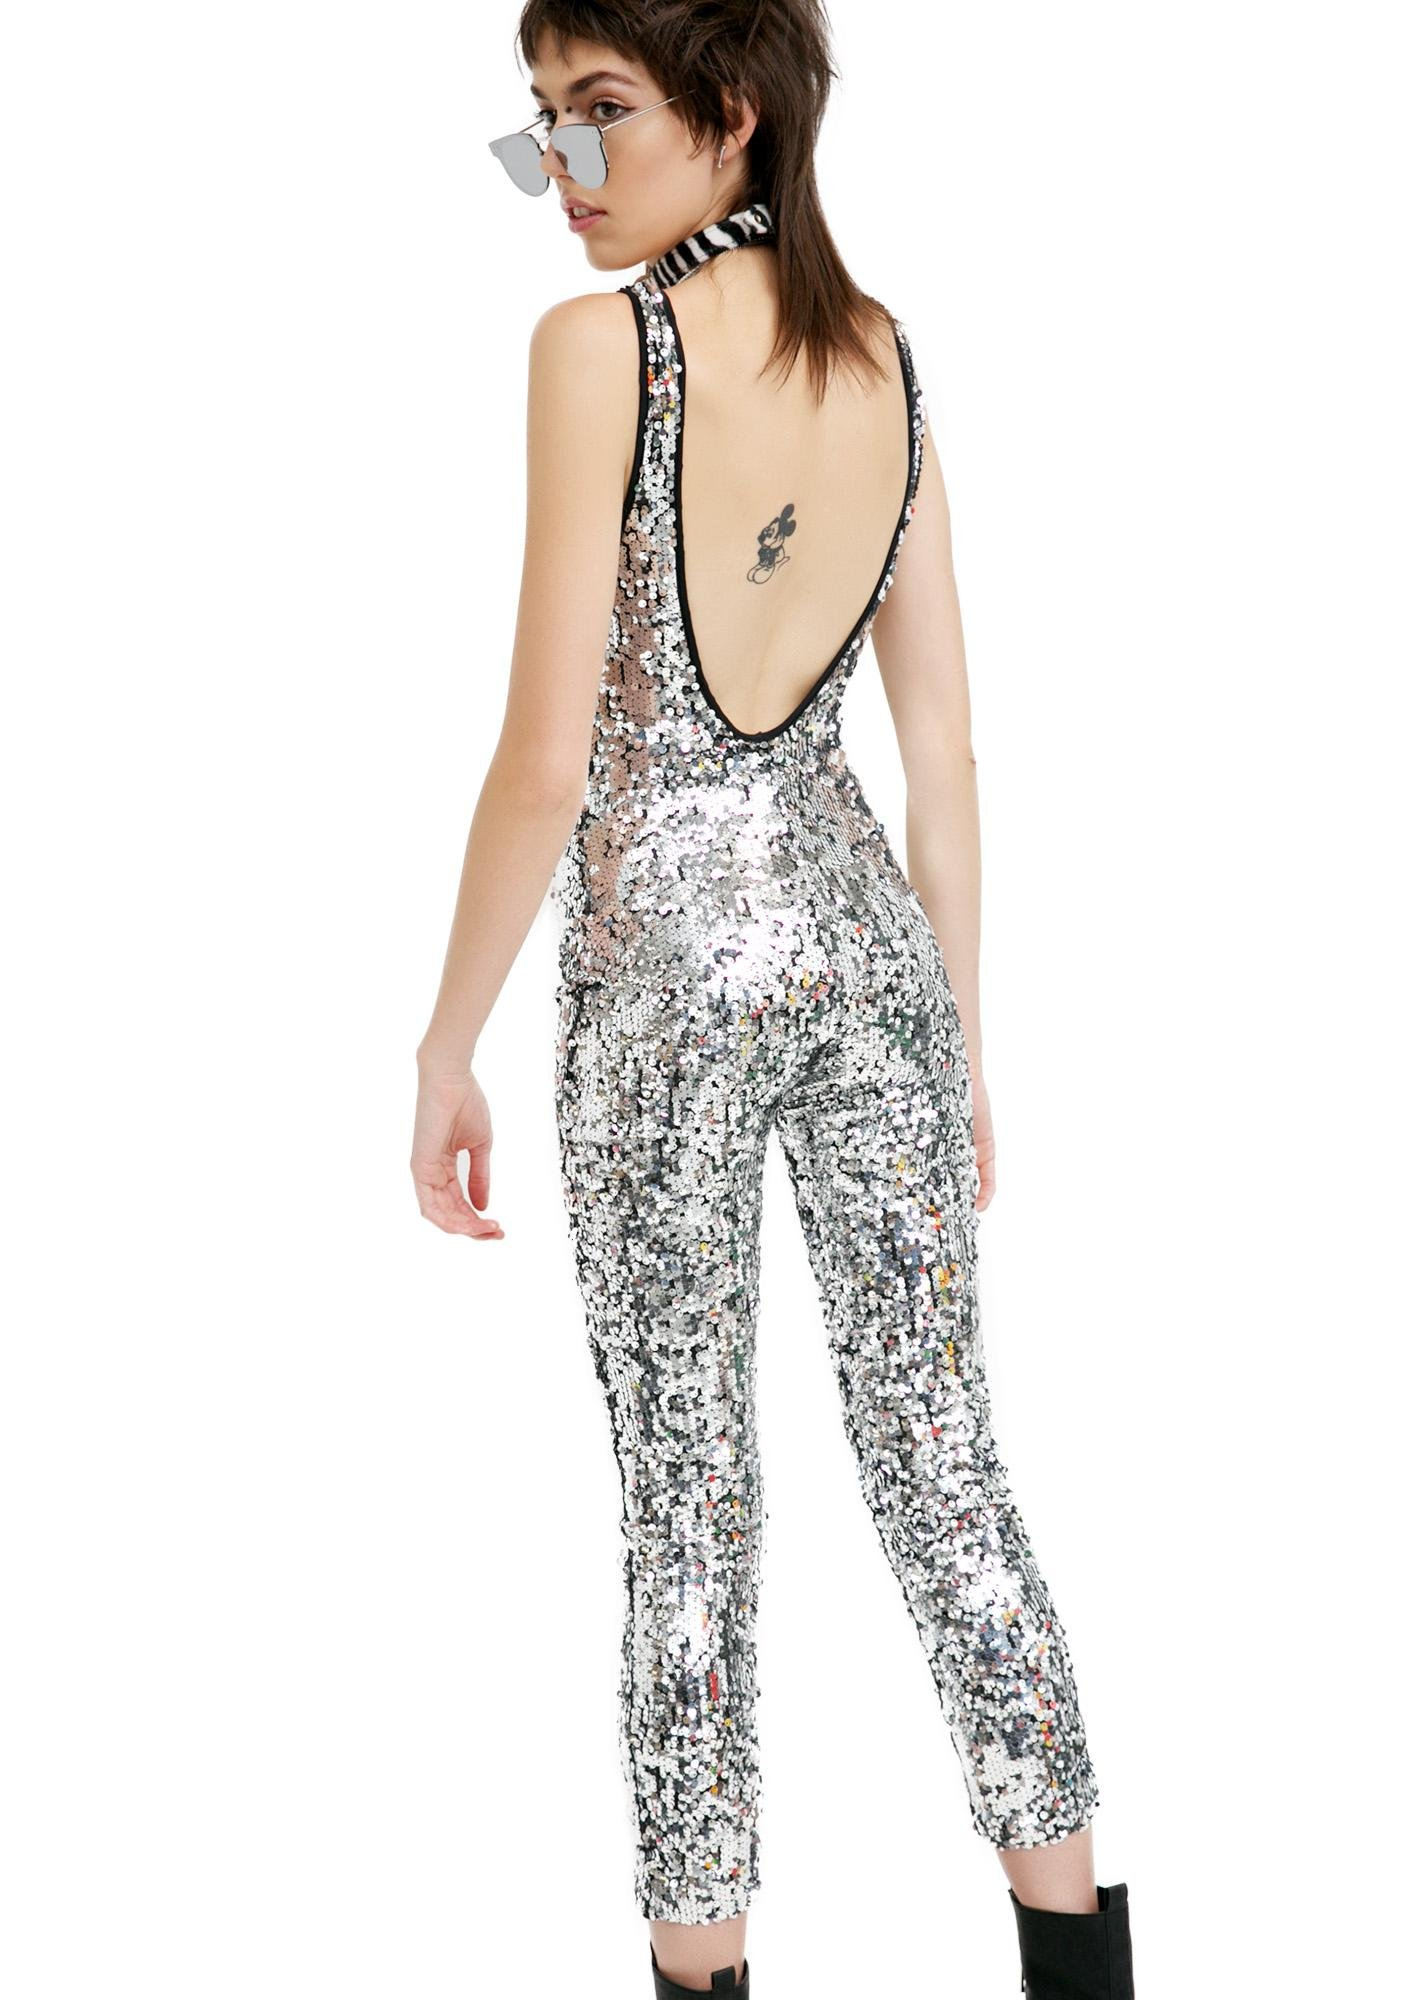 41451ec9716 Silver Sequin Jumpsuit